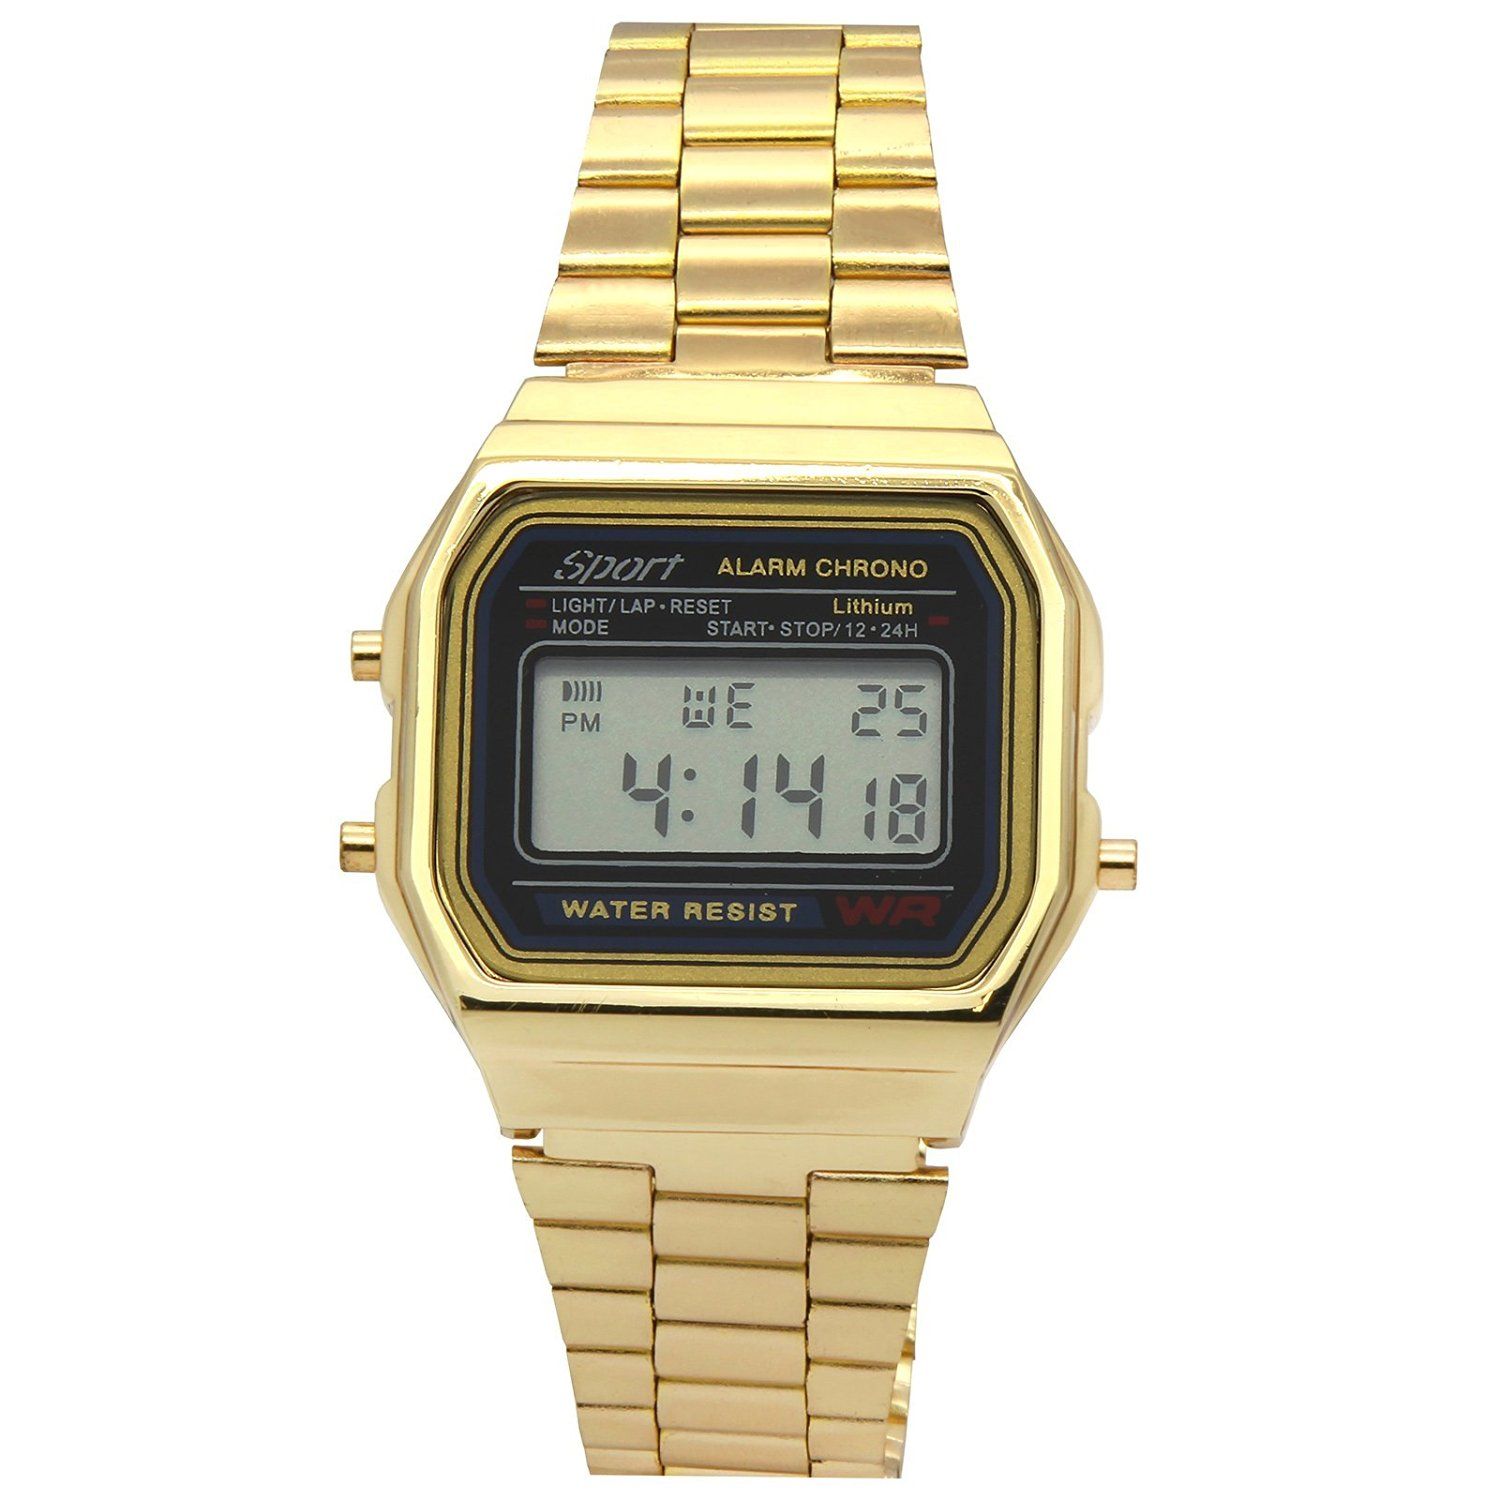 Mens Gold Toned Metal Band Black Face Sport Alarm Chrono LED Digital Wrist Watch Watches